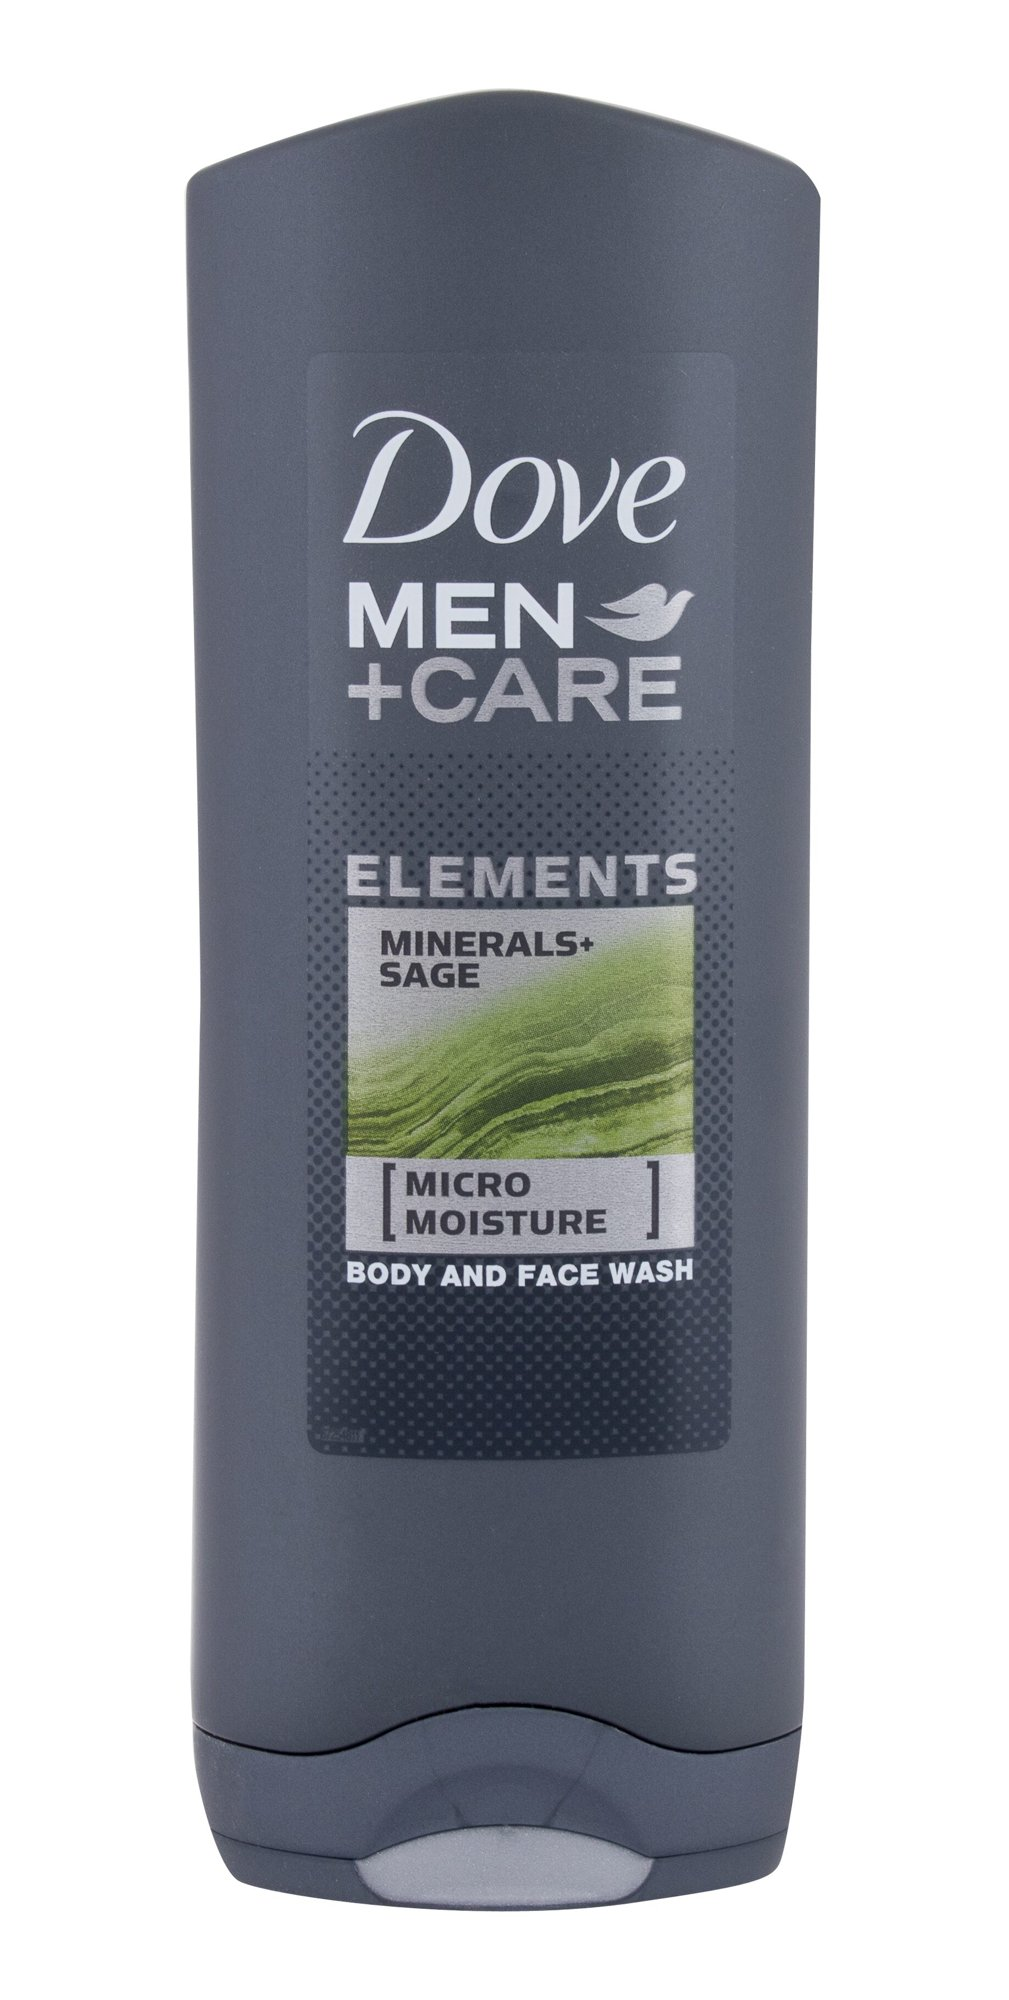 Dove Men + Care Elements, tusfürdő gél 250ml